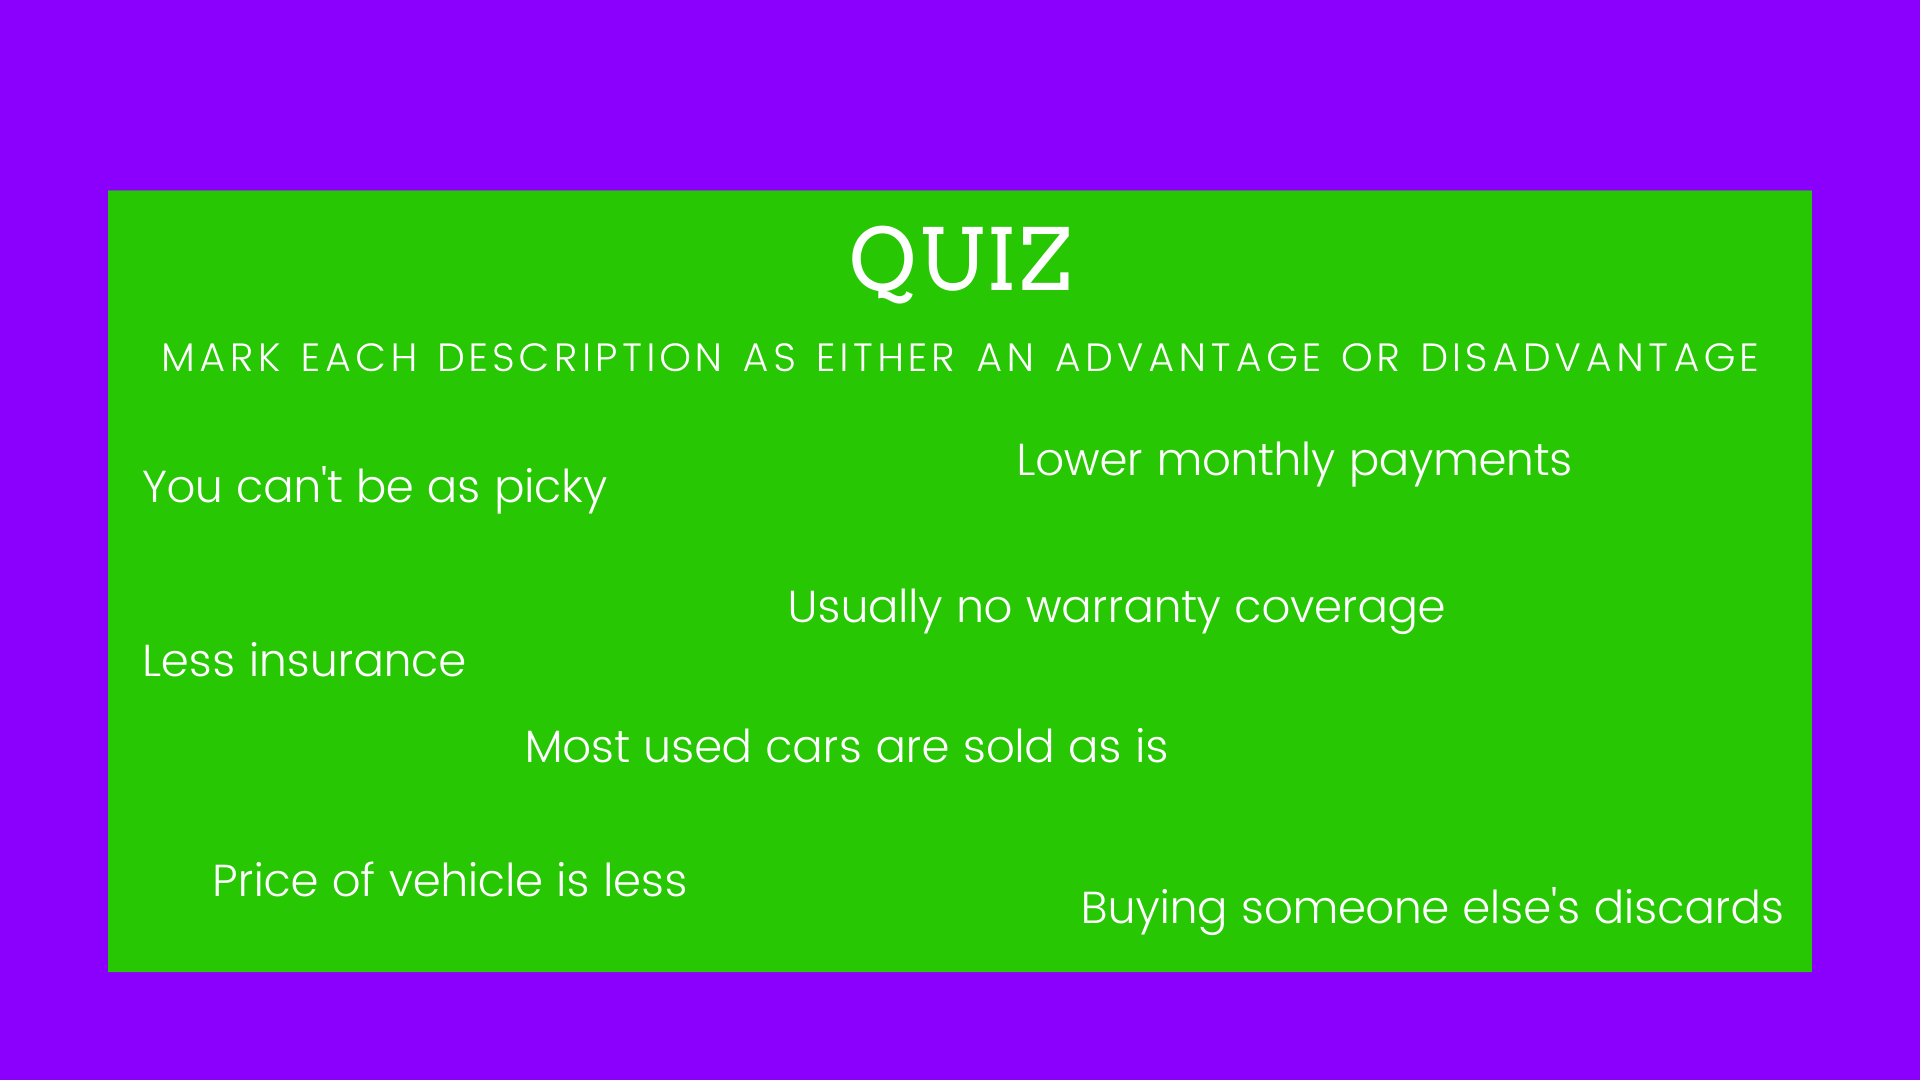 Mark each description as an advantage or disadvantage. 1: You can't be as picky. 2: Lower monthly payments. 3: Less insurance. 4:Usually no warranty coverage. 5: Most used cars are sold as is. 6: Price of vehicle is less. 7: Buying someone else's discards.